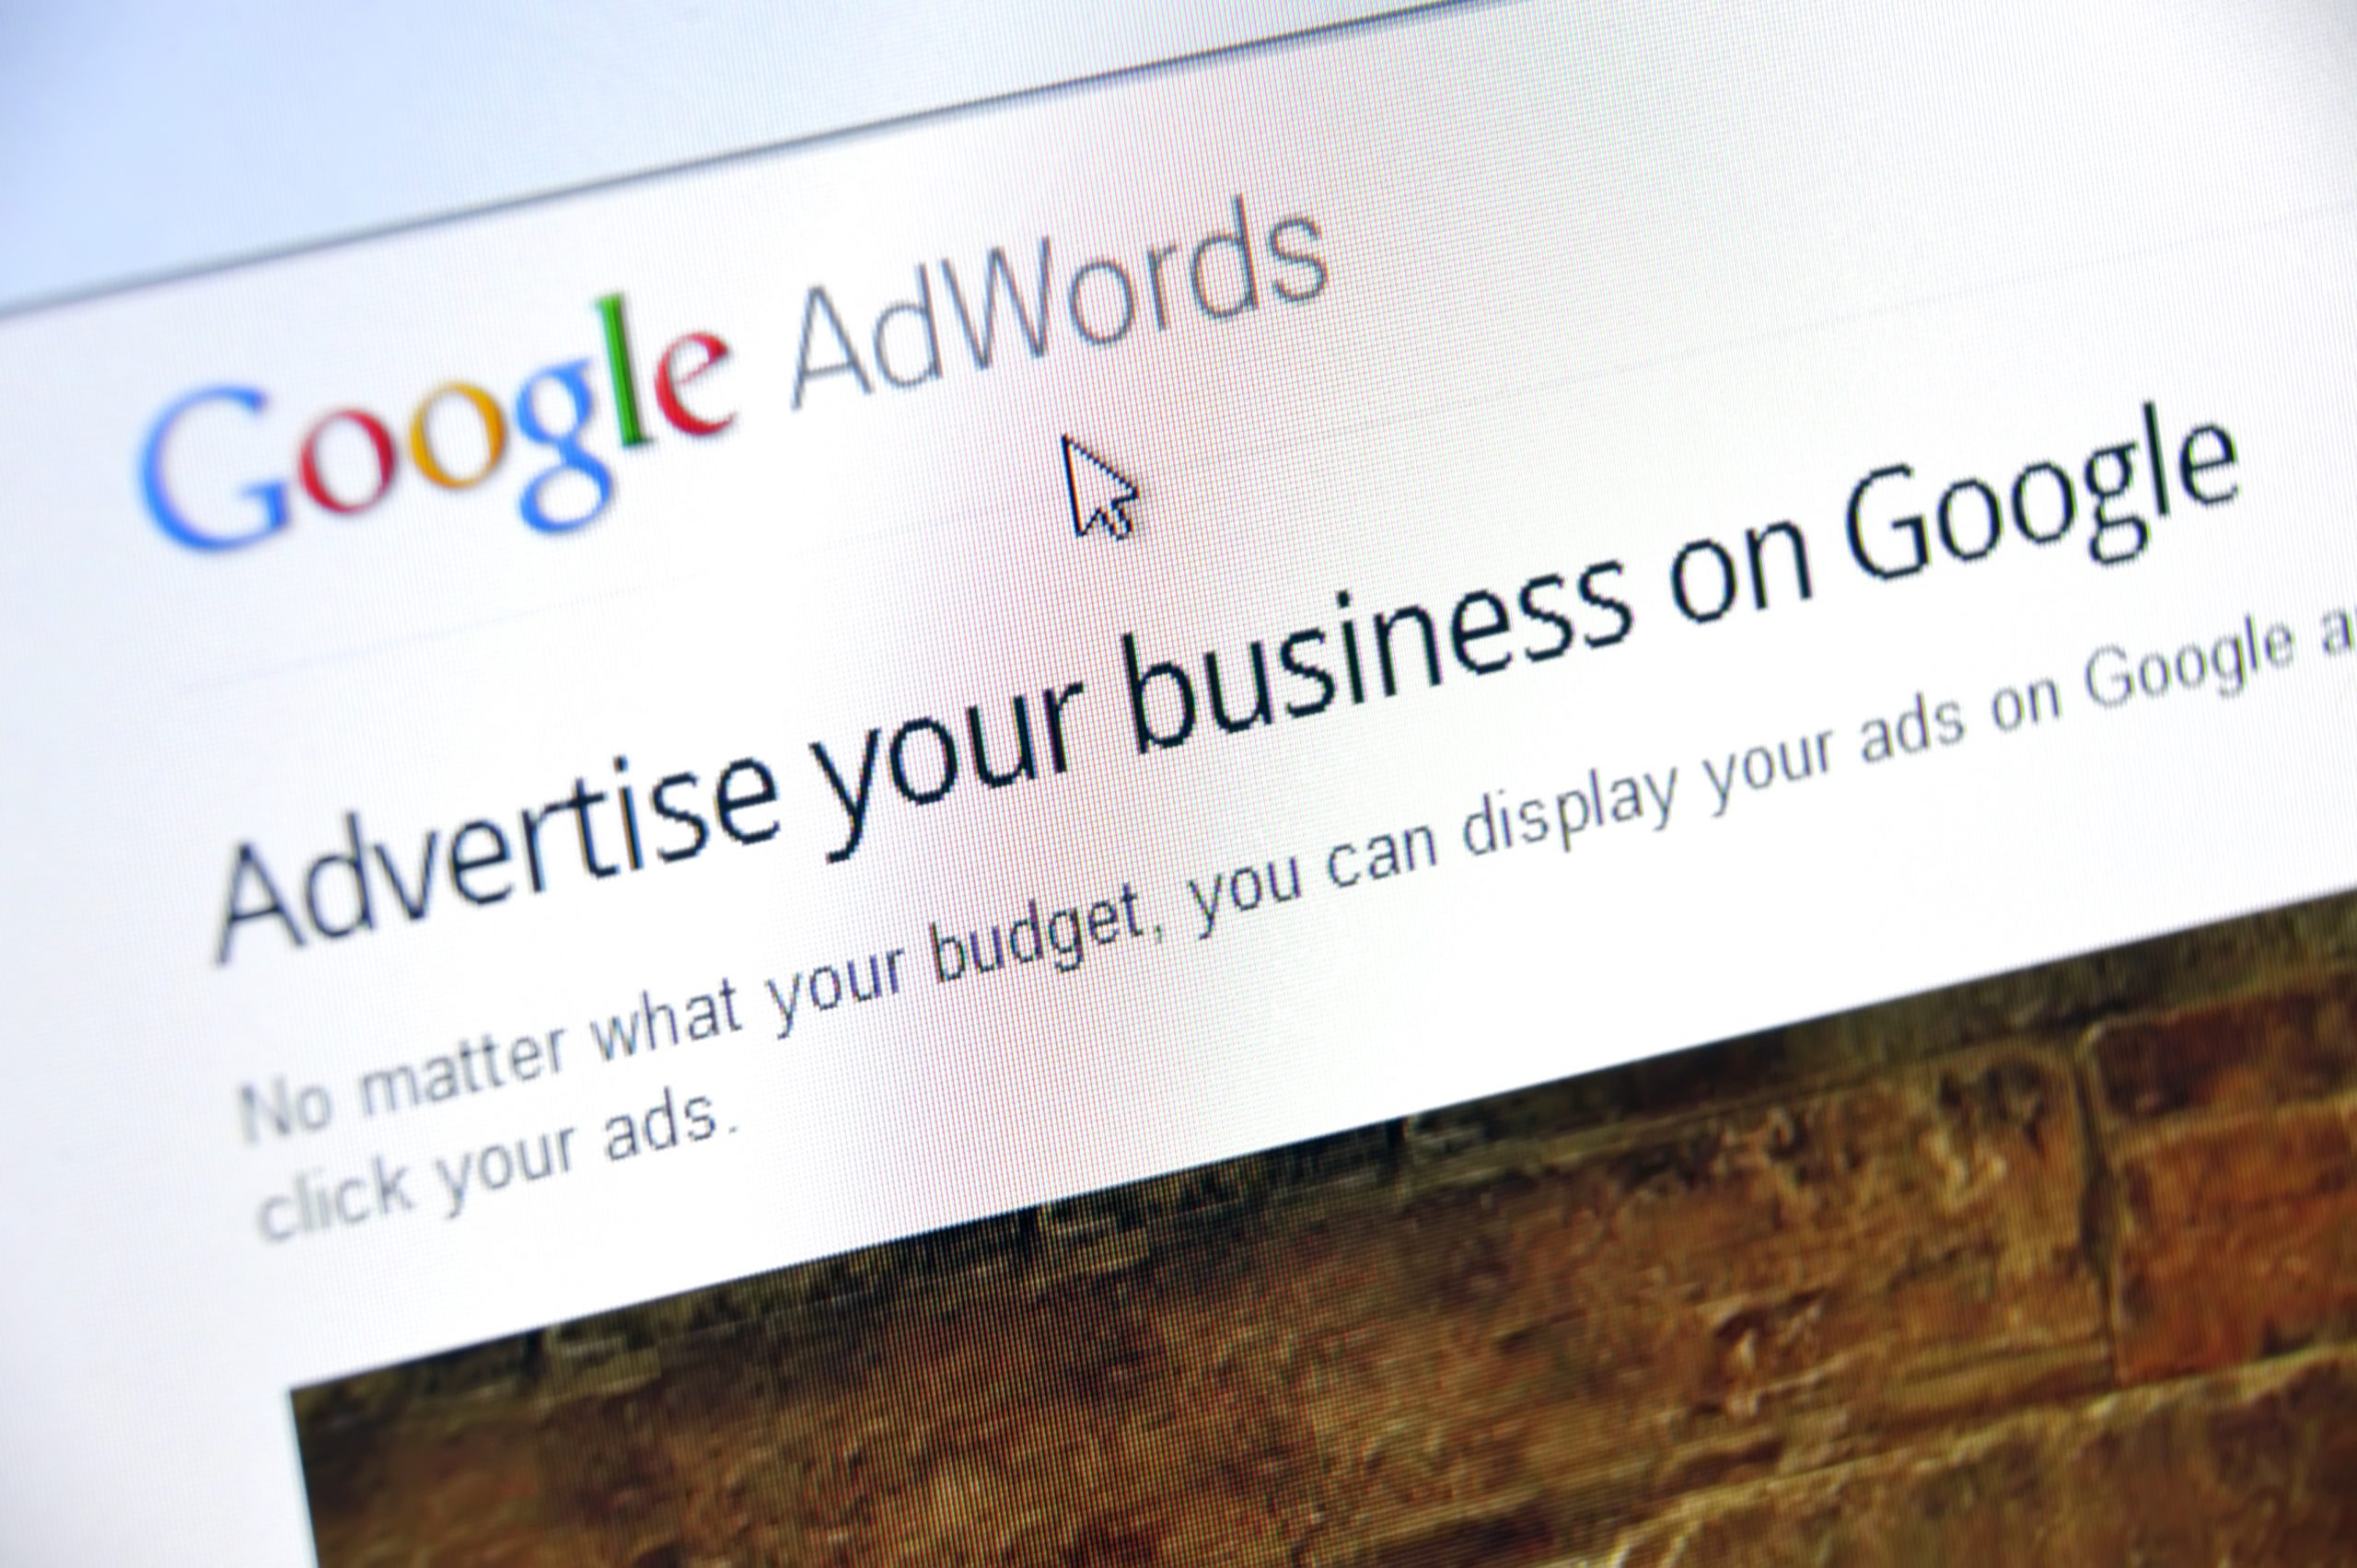 GUIDE: How to set up Google AdWords Call Conversion Tracking